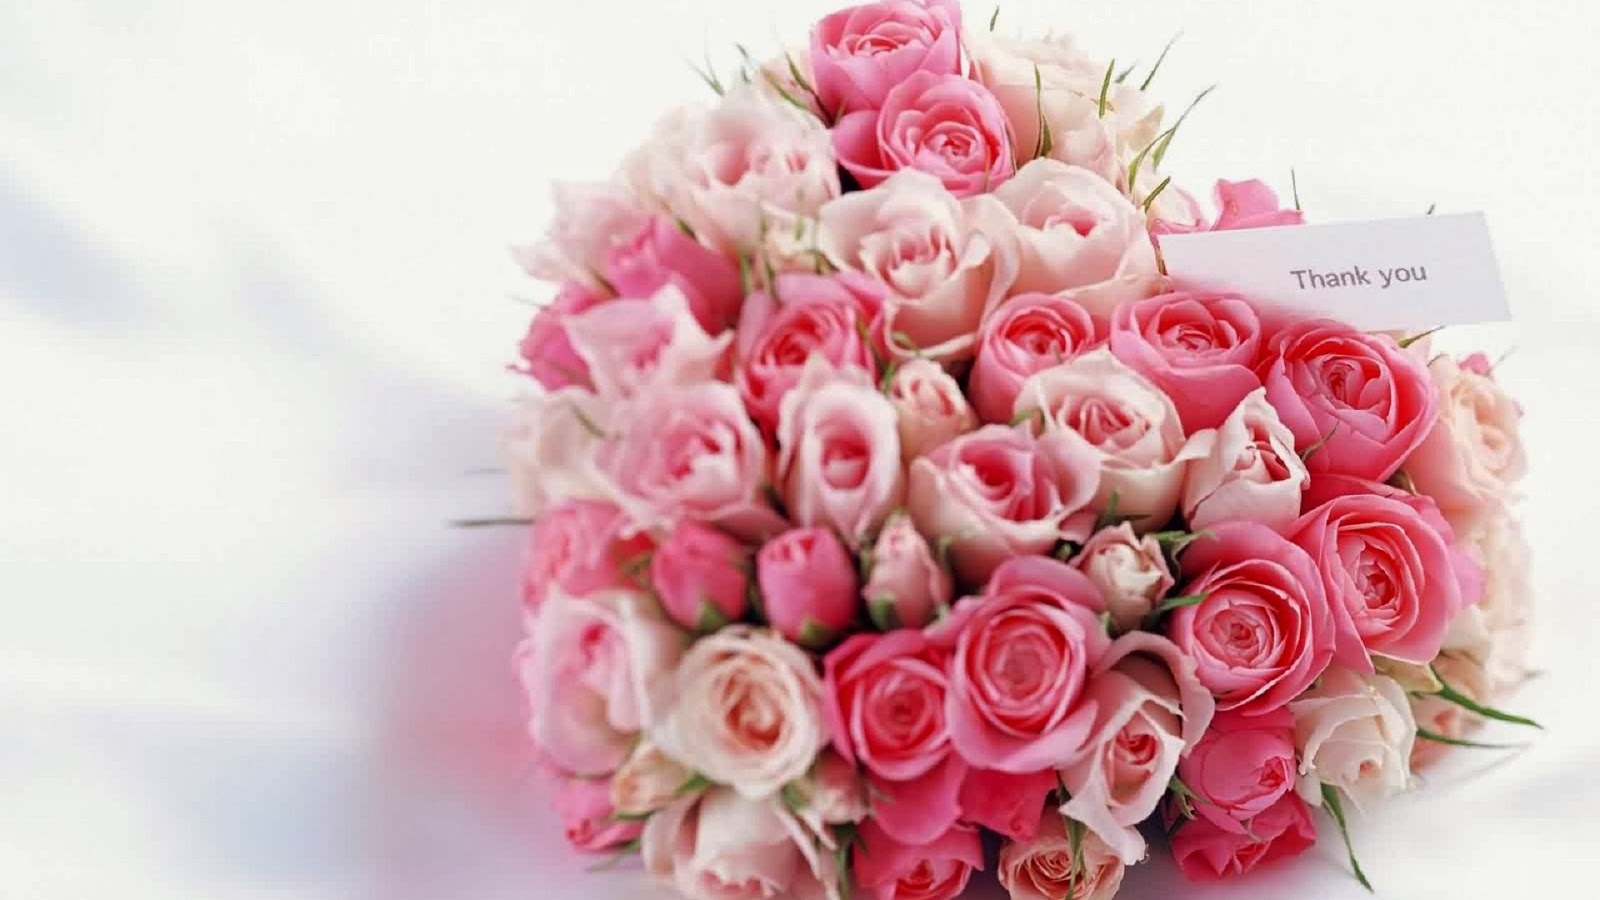 Happy valentine 39 s day flowers wallpapers - Valentine s day flower wallpaper ...